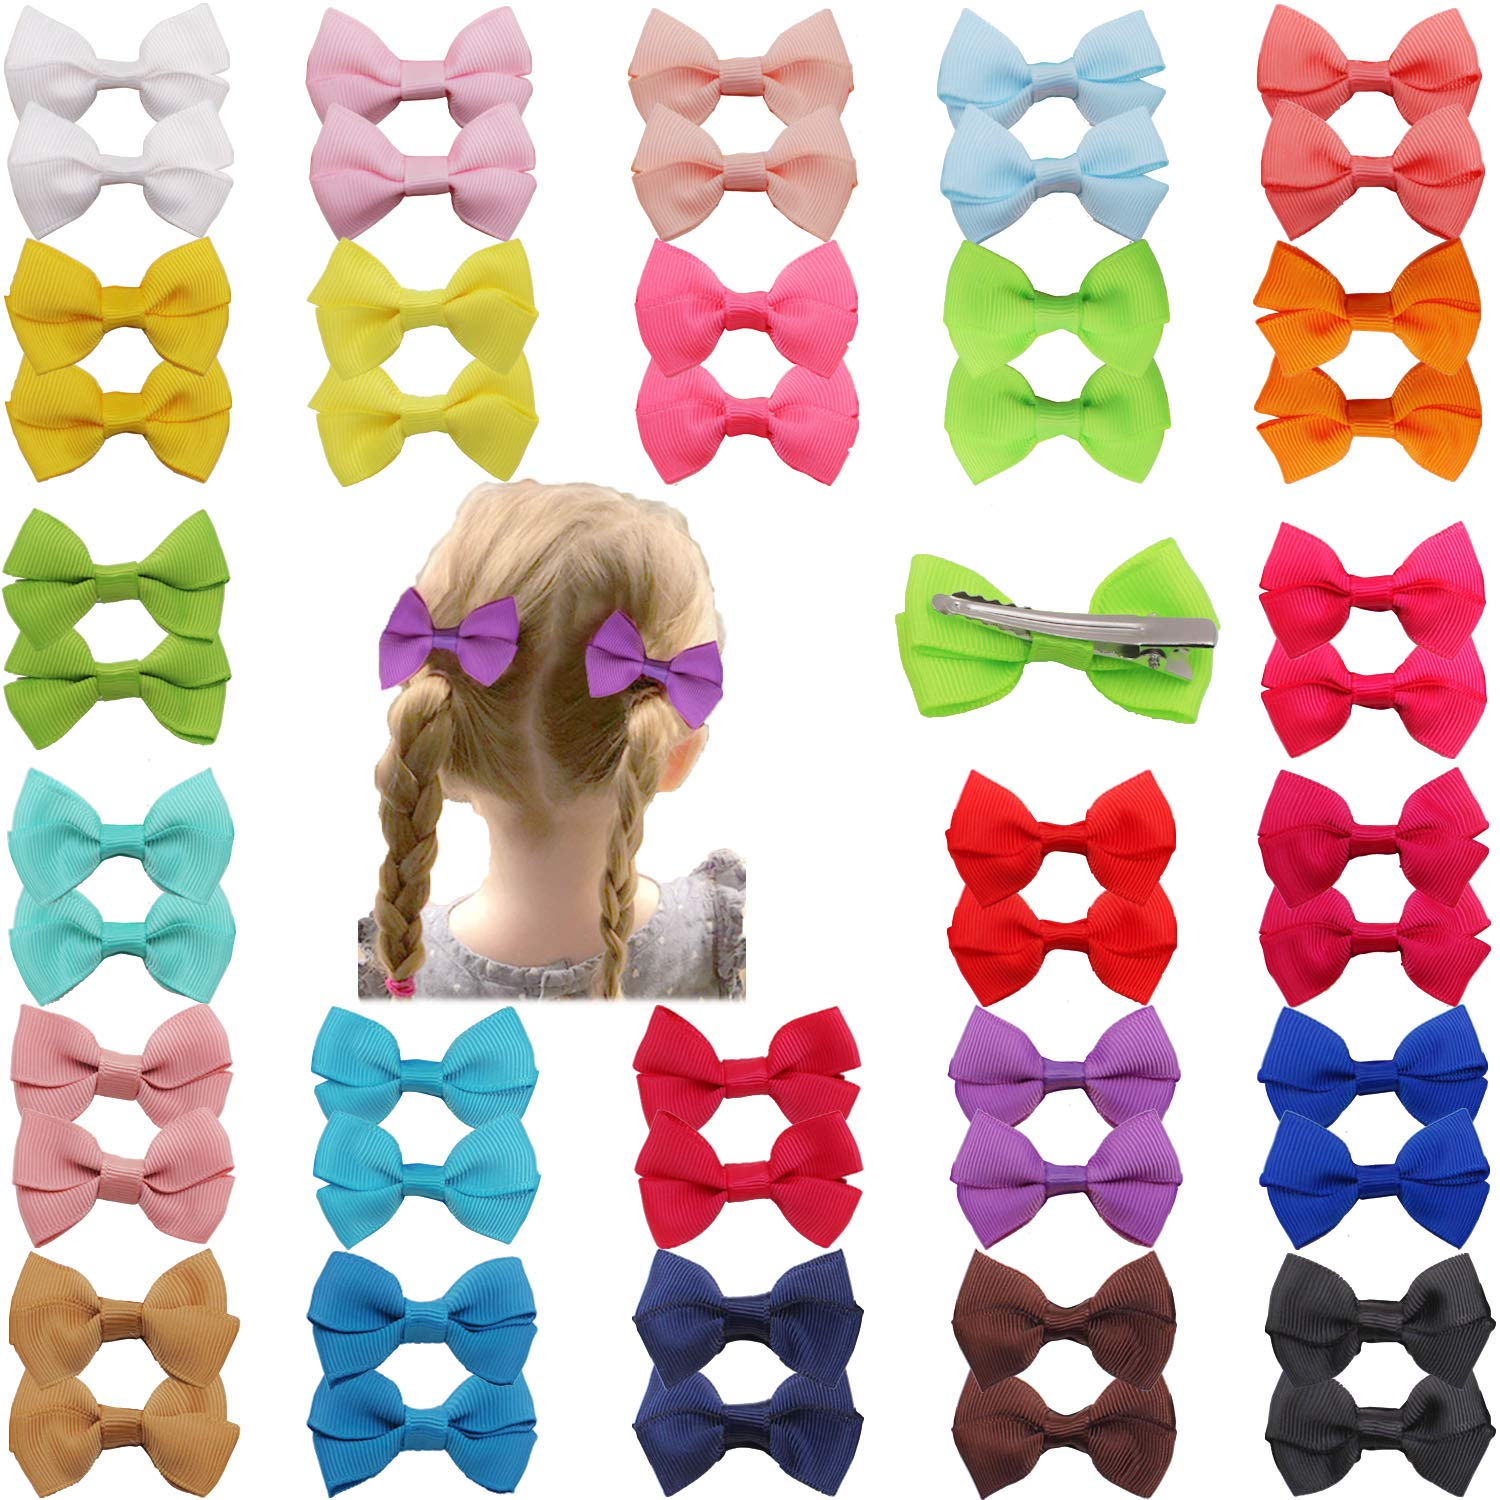 DeD 50 Pieces 2 Inch Mini Hair Bows Clips for Baby Girl Small Hair Bows for Girls Toddlers Kids In Pairs